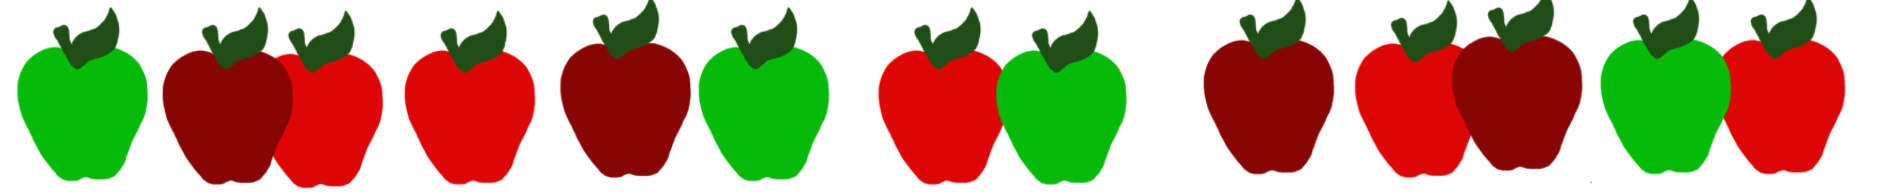 Sick apple clipart image royalty free stock TEACHER TUESDAY: How to Read a Story by Kate Messner – One Page At A ... image royalty free stock